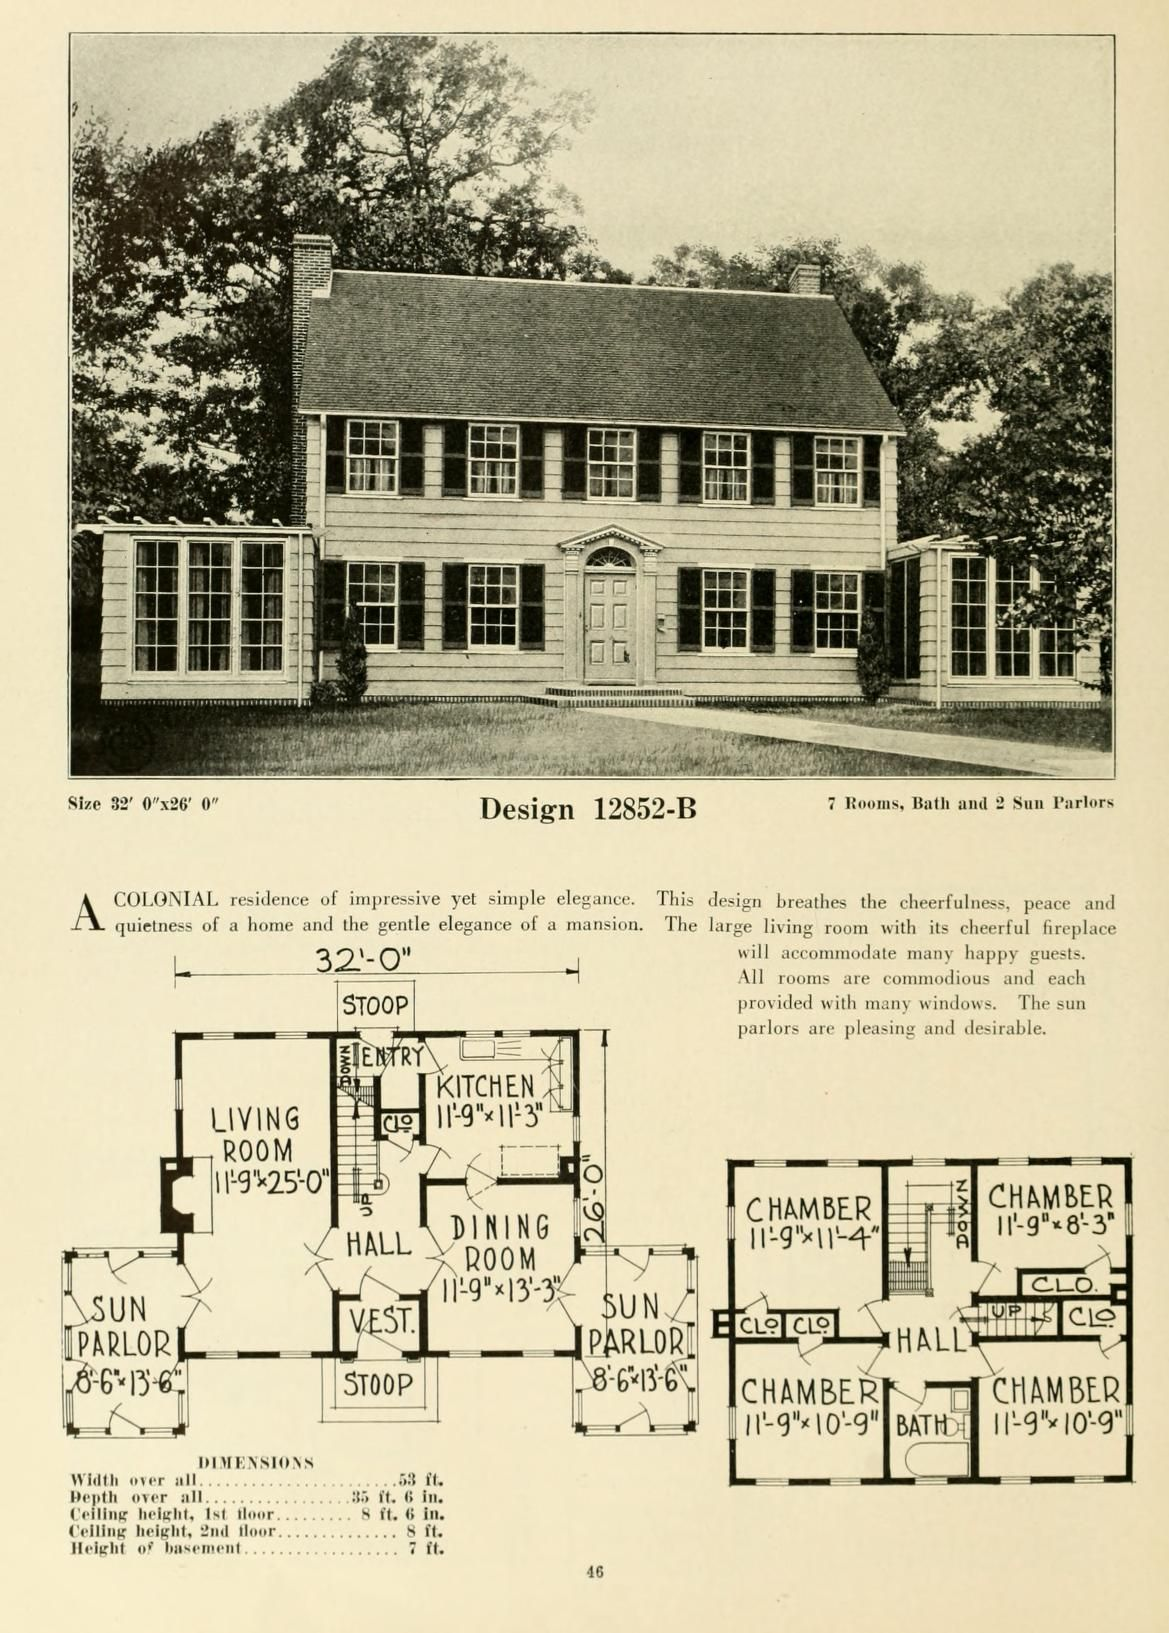 Pin By Theresa Miller On Home Plans In 2020 Colonial House Plans Vintage House Plans Beach House Plans